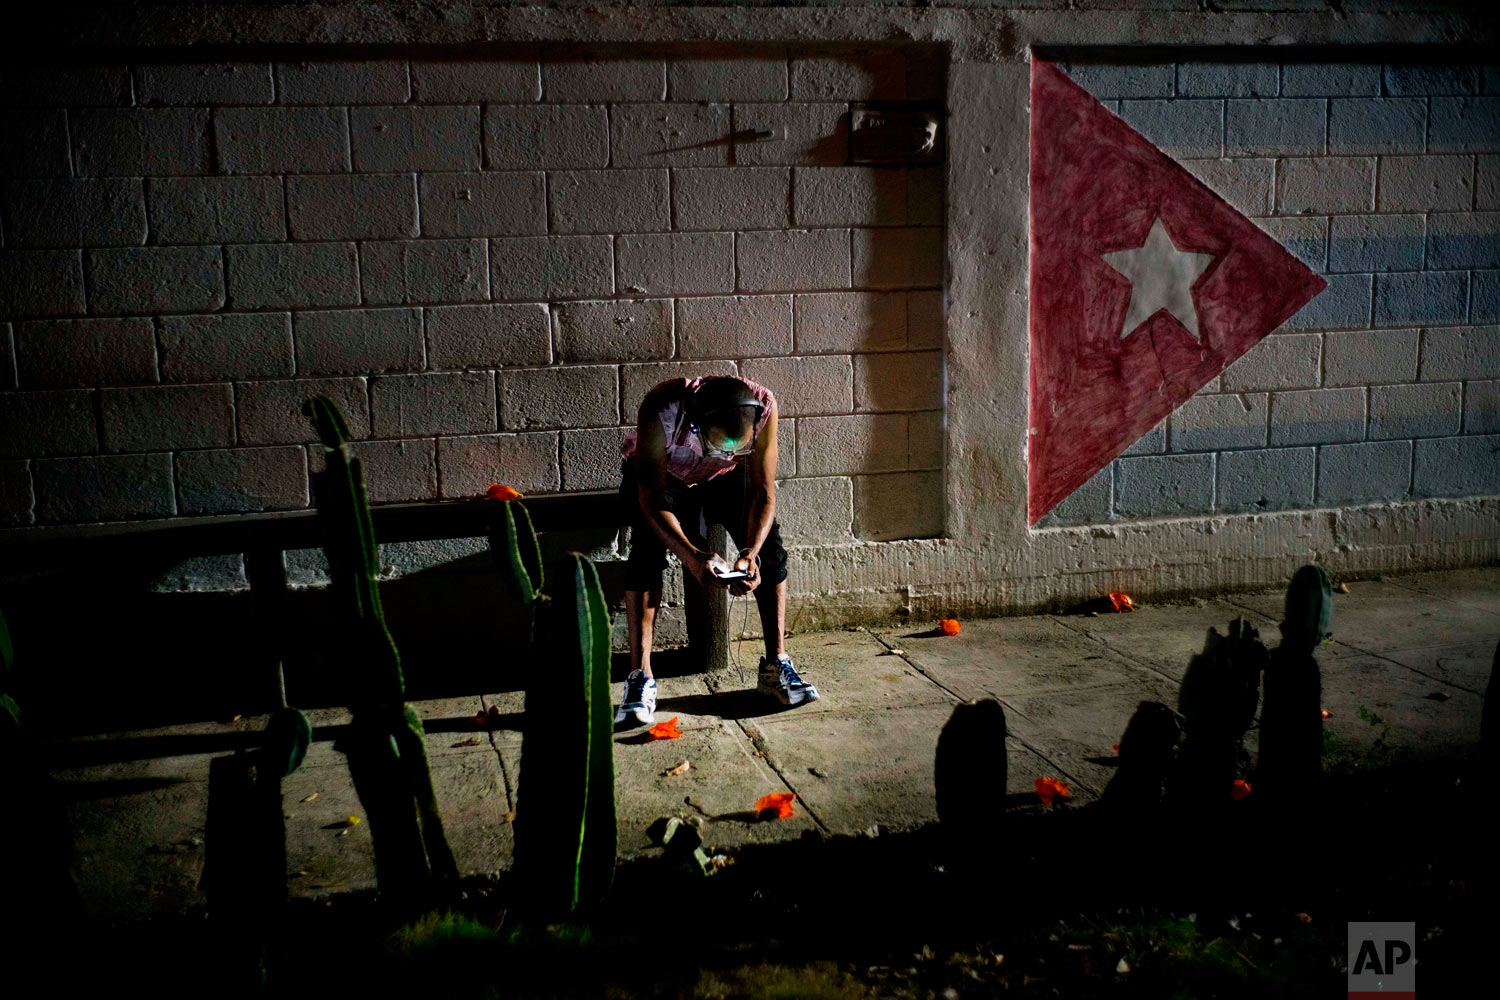 "Lazaro Rodriguez, 42, connects his cellphone at a public internet hot spot at night in Havana, Cuba on Saturday, April 14, 2018. Lazaro, who studied baking and is currently working in maintenance, said he's seen very positive changes in the economy in recent years, and would like to see development continue. ""The generation that comes after me will have much more. I lived 'the special period' in the 90s, and the country is still blocked,"" referring to the U.S. embargo. (AP Photo/Ramon Espinosa)"